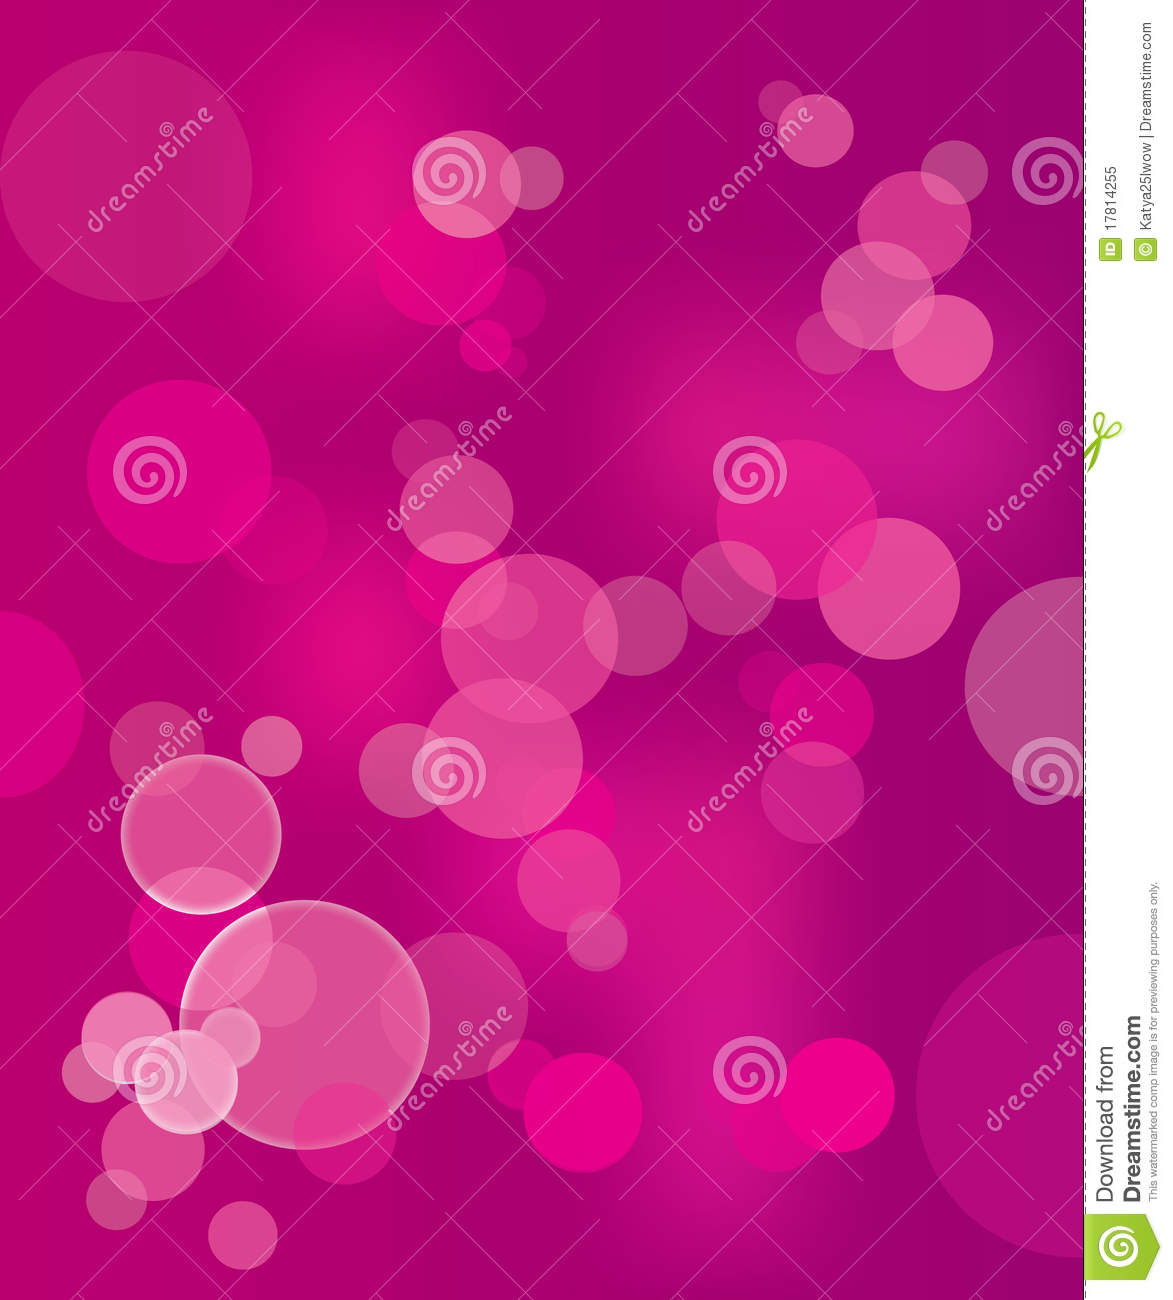 Royalty Free Stock Photos Fantasy Boar Huge Tusks Image11421198 likewise 1134 Children's Interactive Museum moreover Royalty Free Stock Photo Vector Pink Abstract Background Bubble Image17814255 in addition Arvores in addition Royalty Free Stock Images European Calendar Vector Shadow Angles Week Starts Sunday Image35754679. on tree with shadow plan